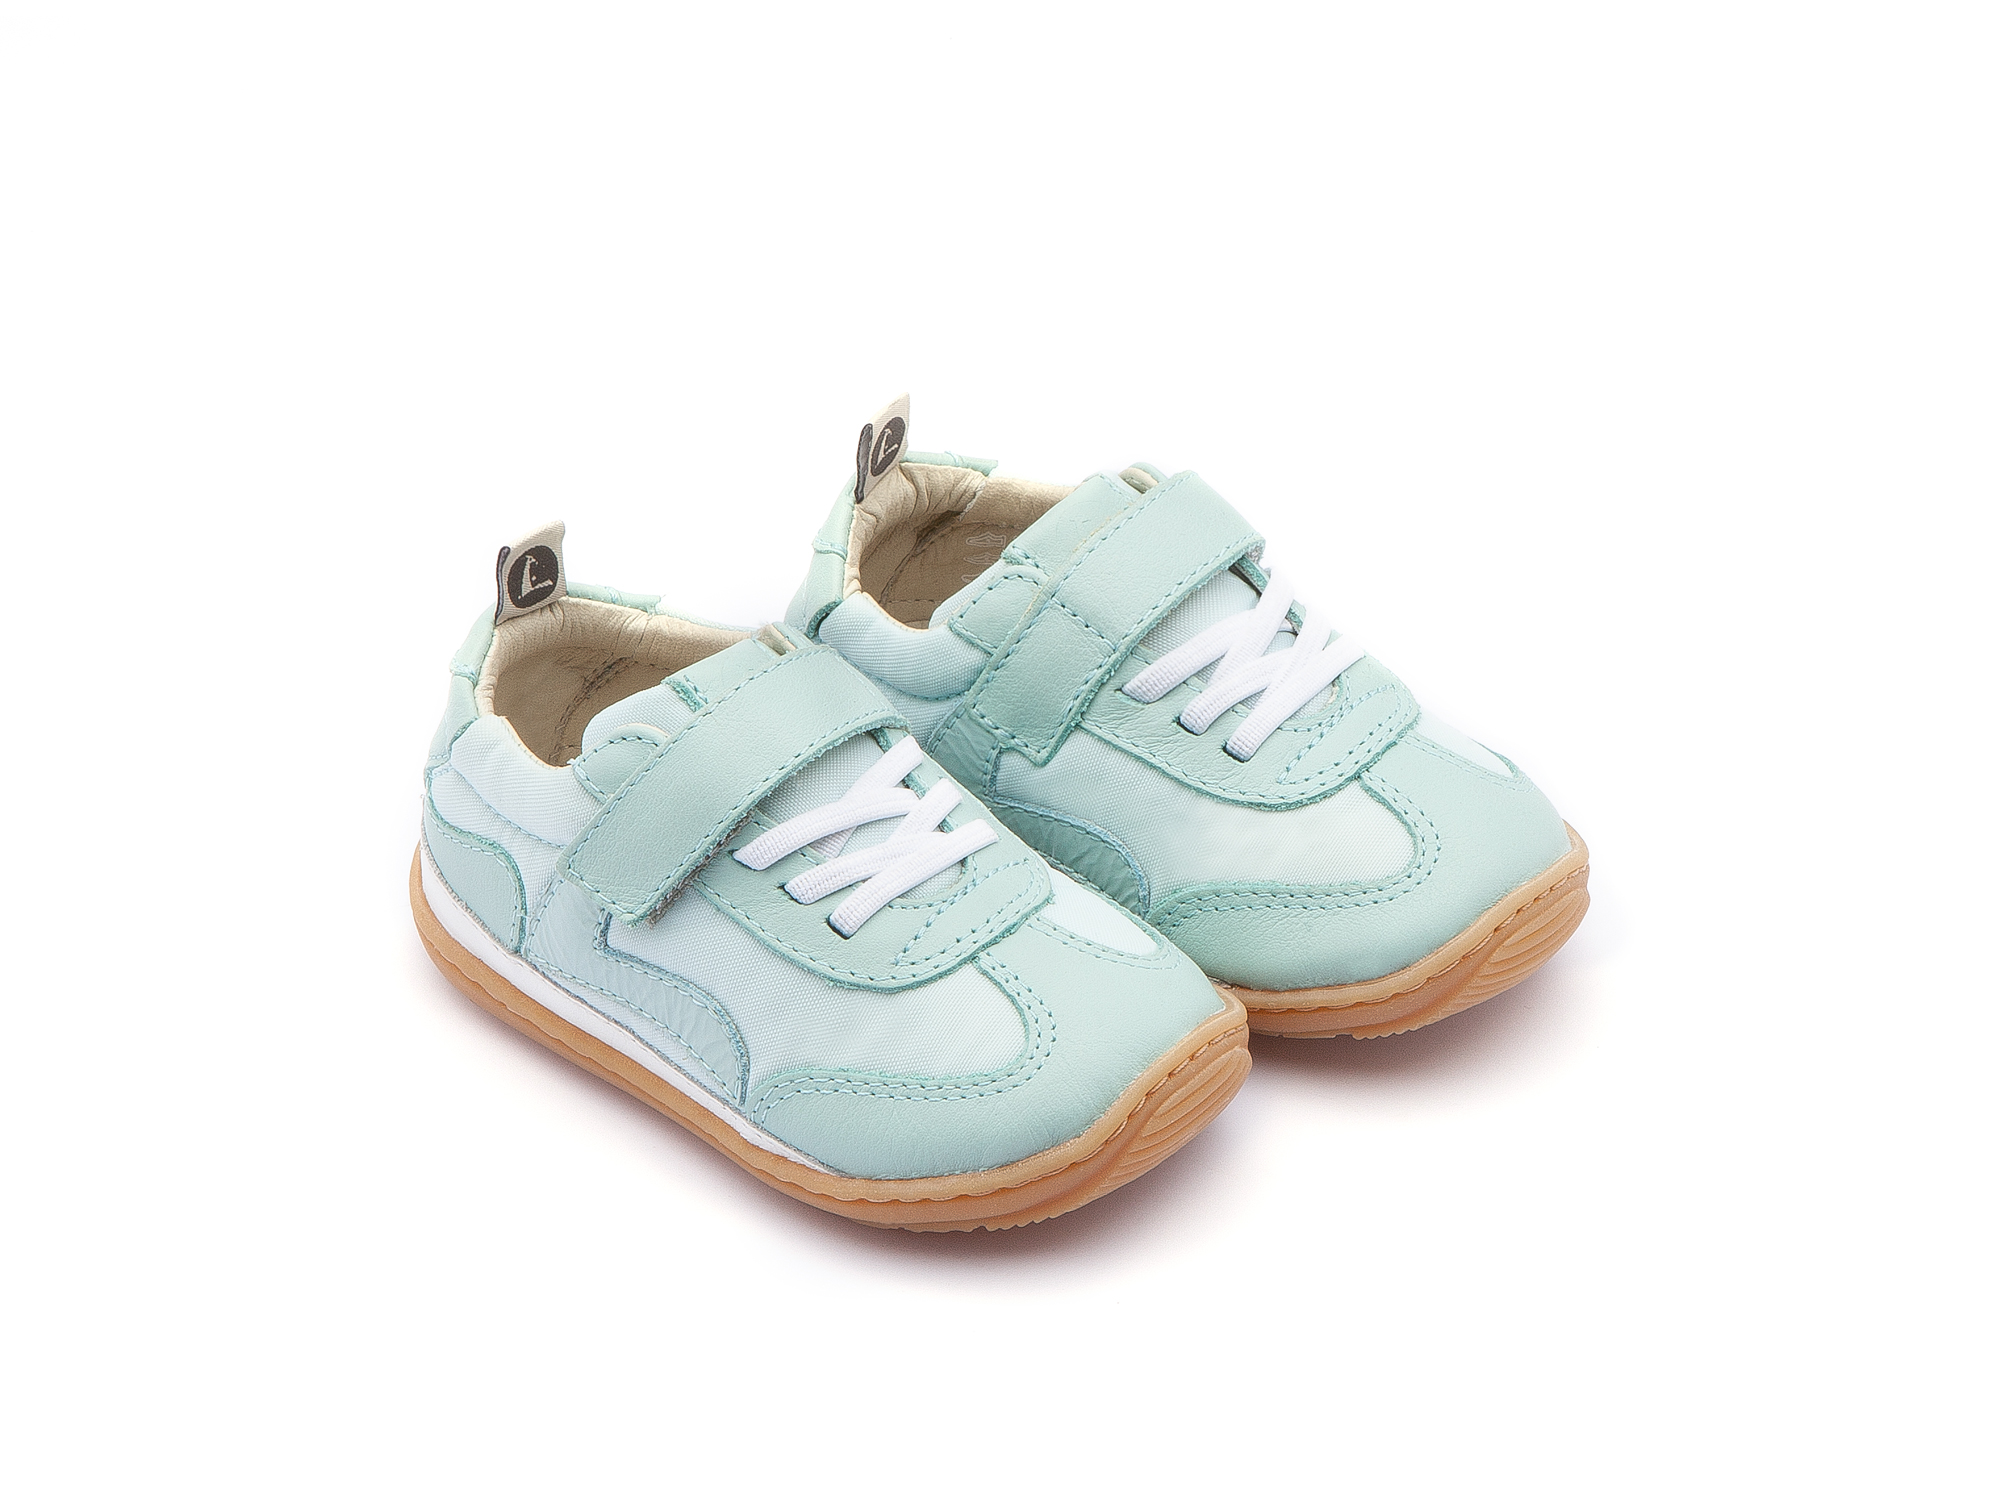 Tênis Starty Light Blue Nylon/ Aquamarine Baby 0 à 2 anos - 0